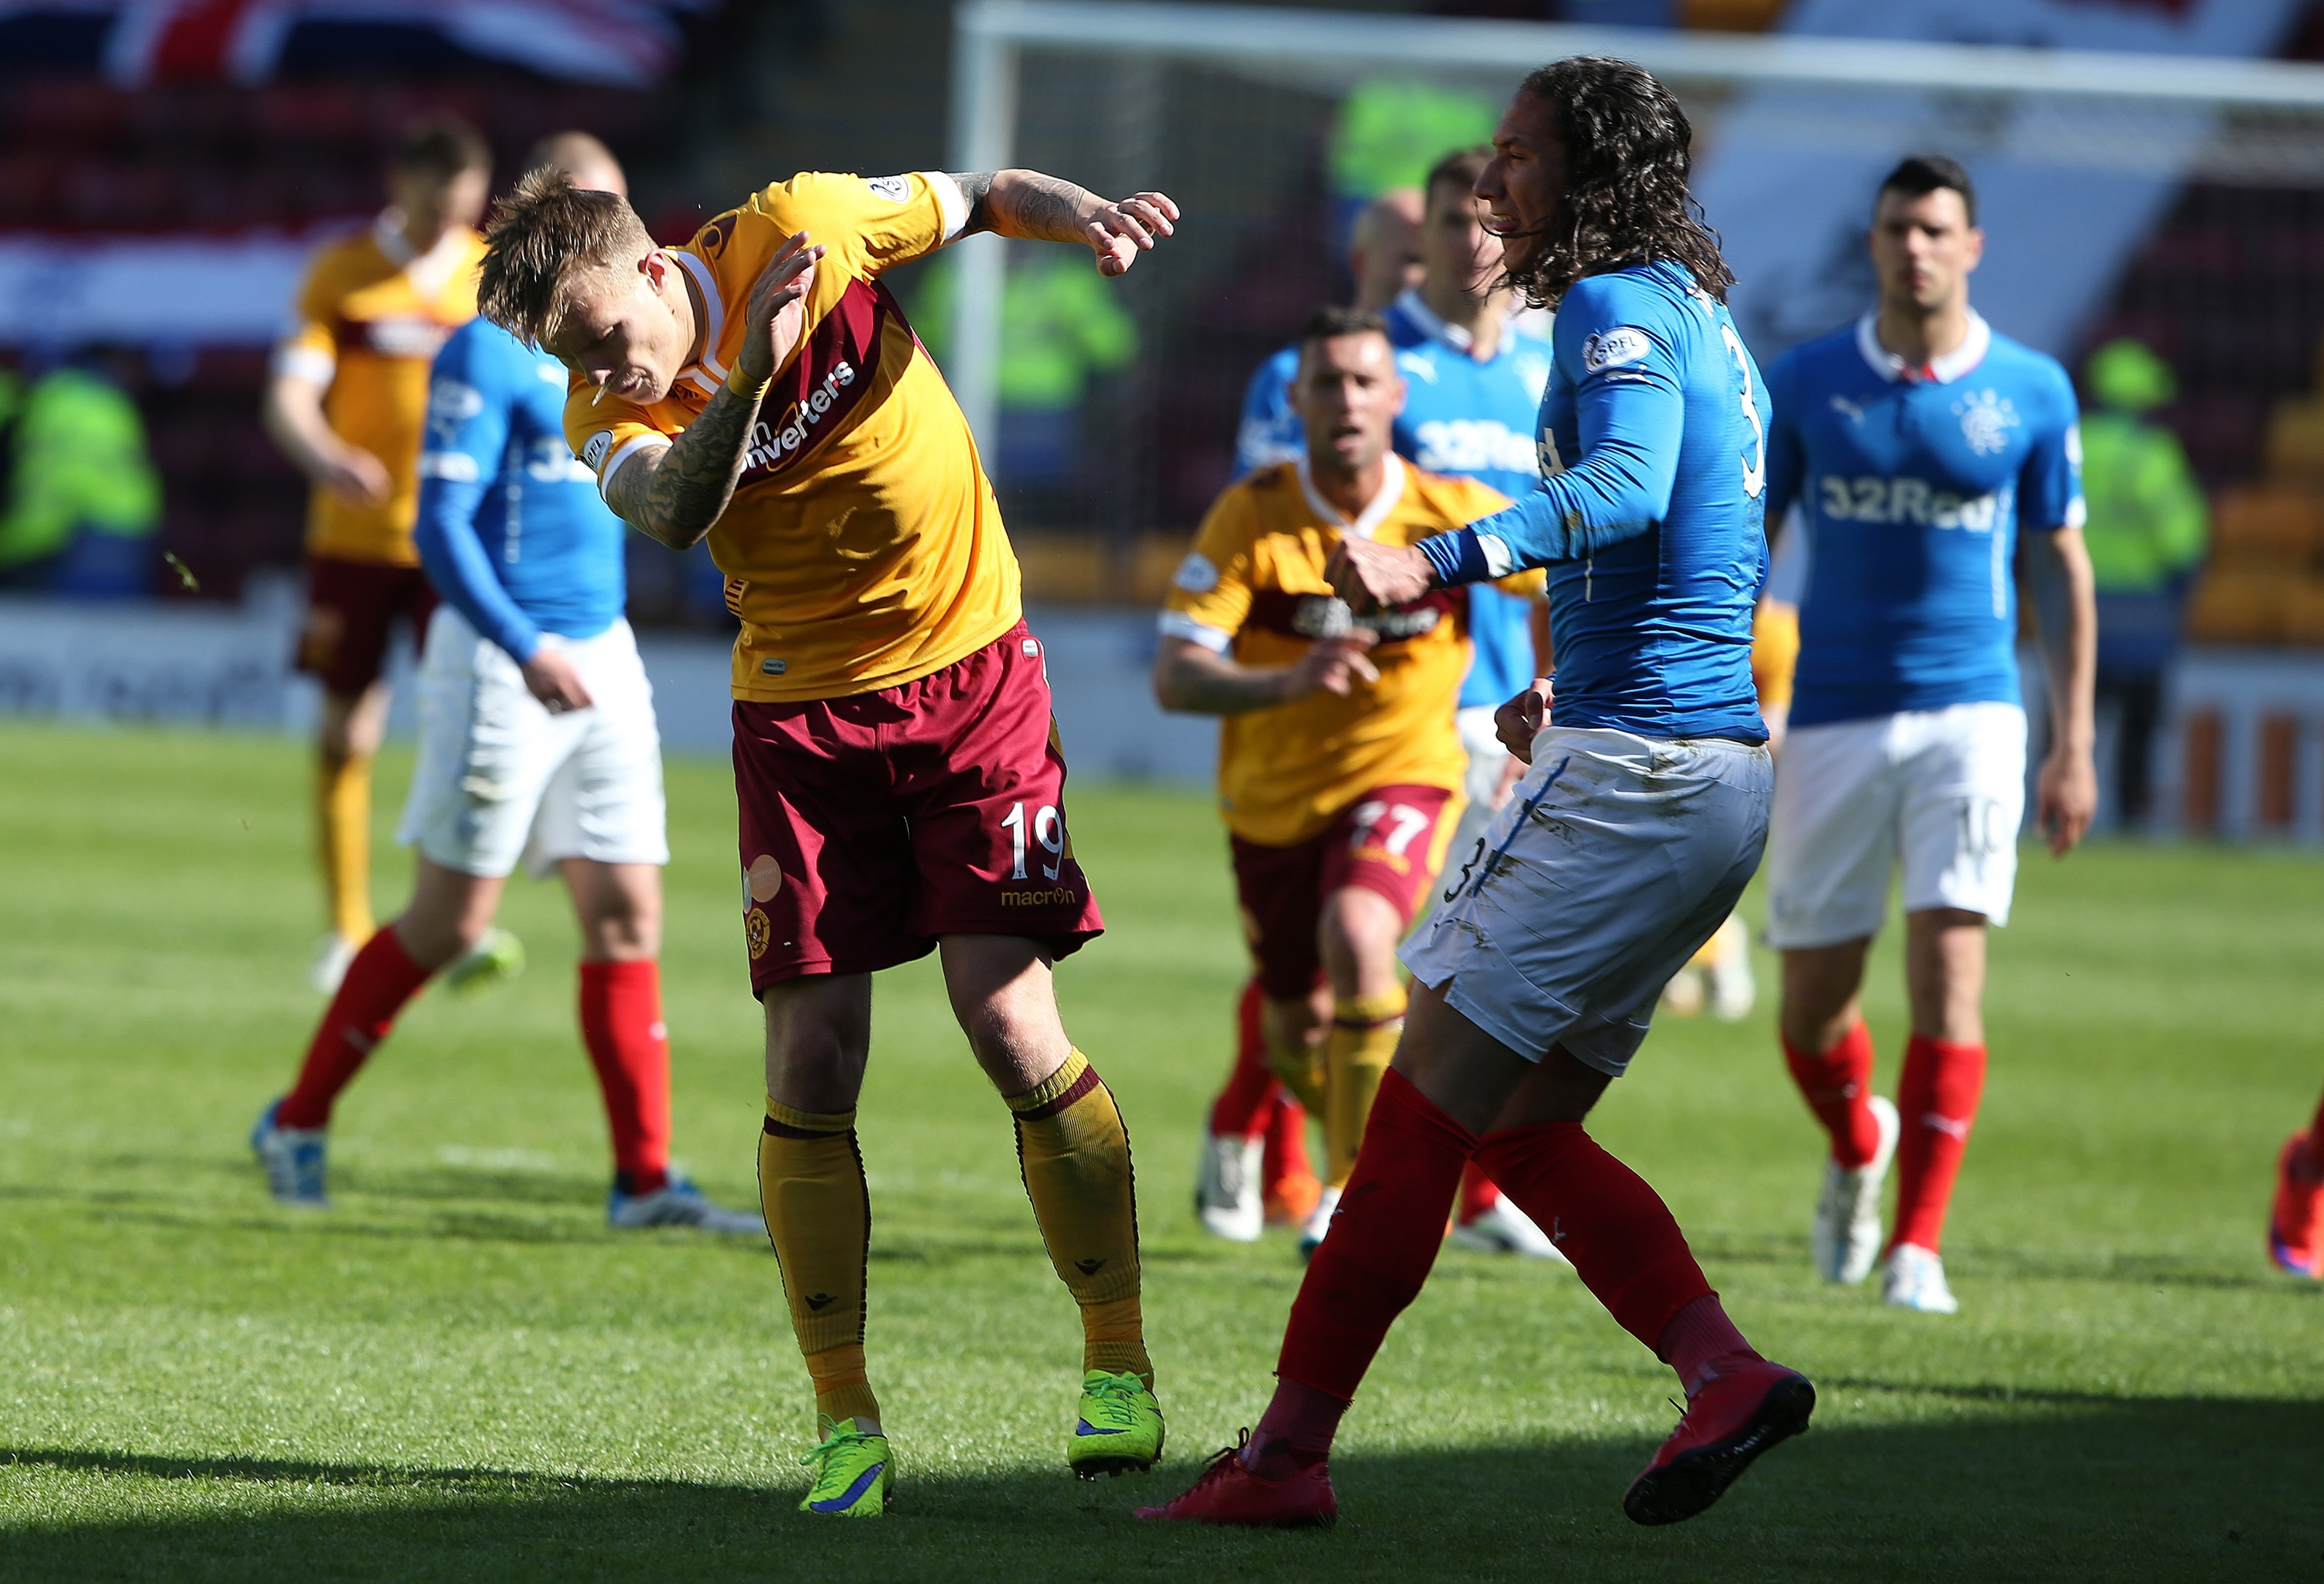 Rangers player Bilel Mohsni reacts after full time